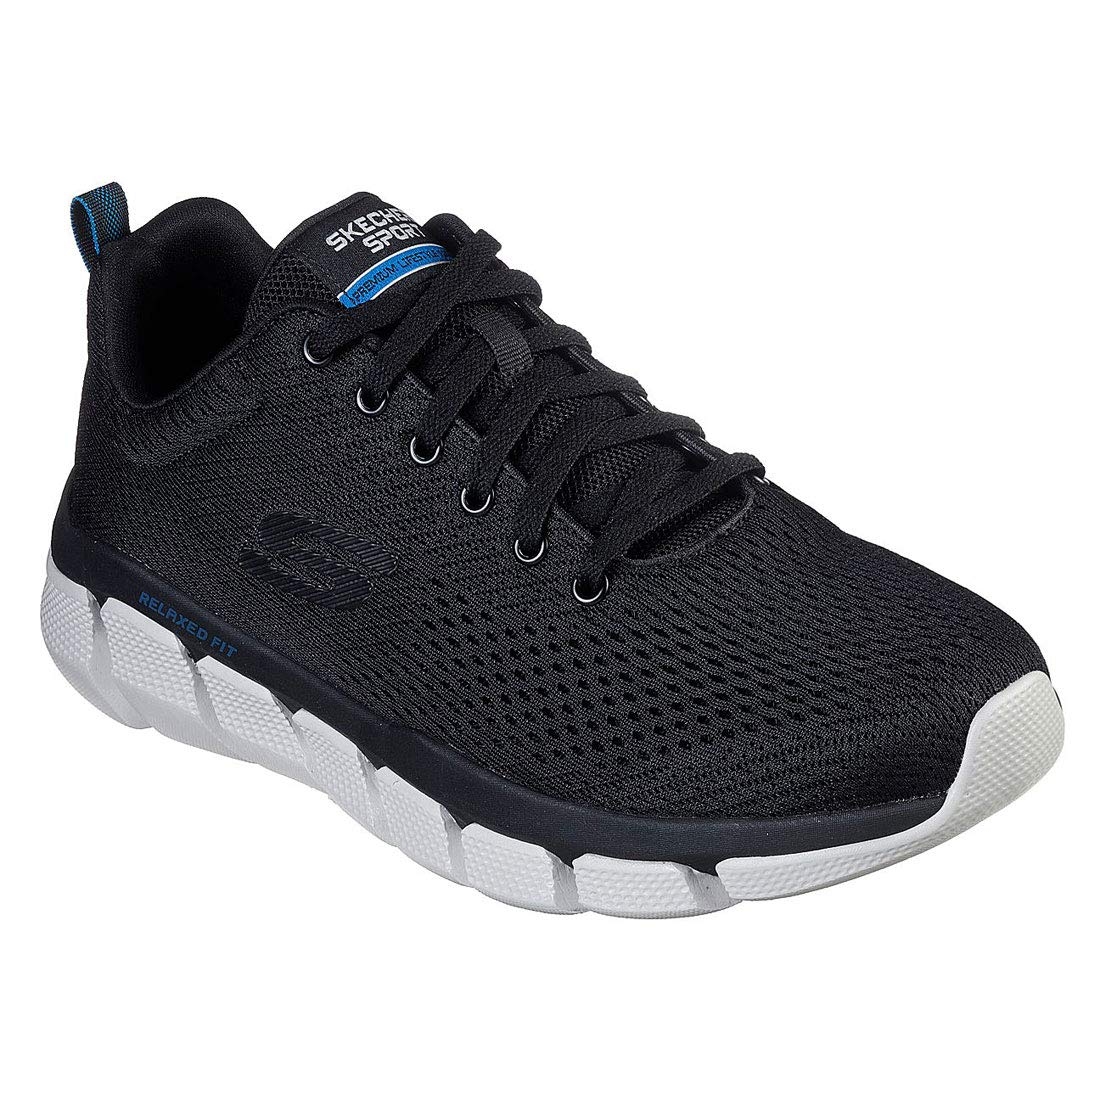 Skechers Flex 3.0 Verko 52857 Mens Gray Athletic Cross Training Shoes